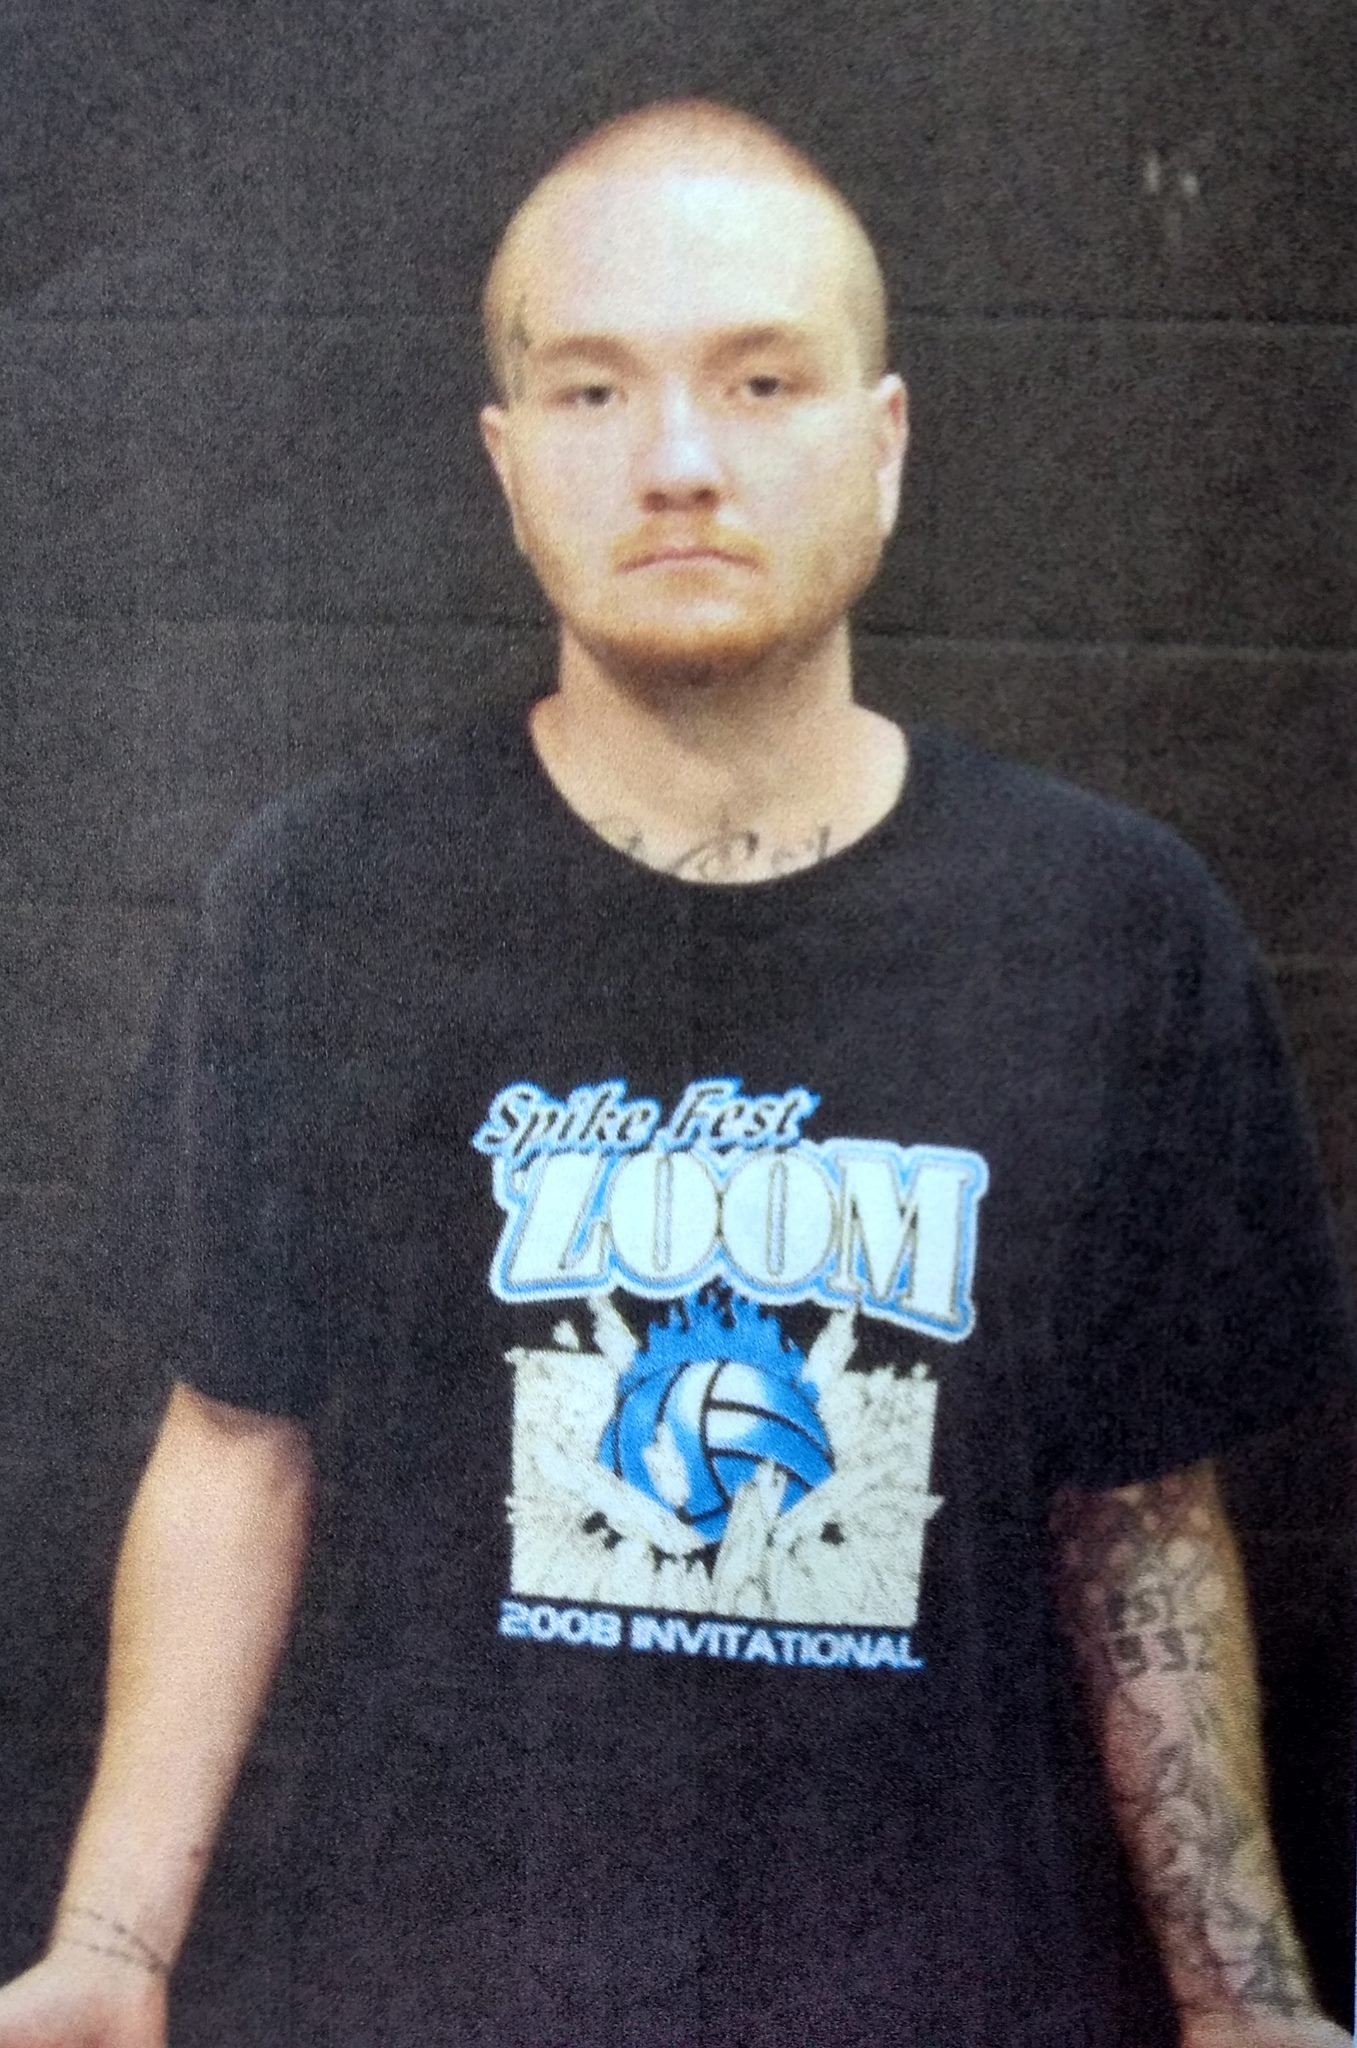 Another picture of Zachary Barnes where his tattoos can be seen. (Via KWCH)